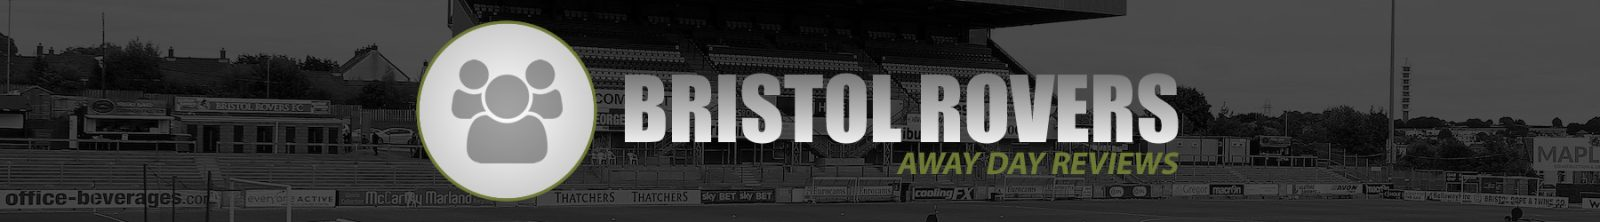 Review Bristol Rovers